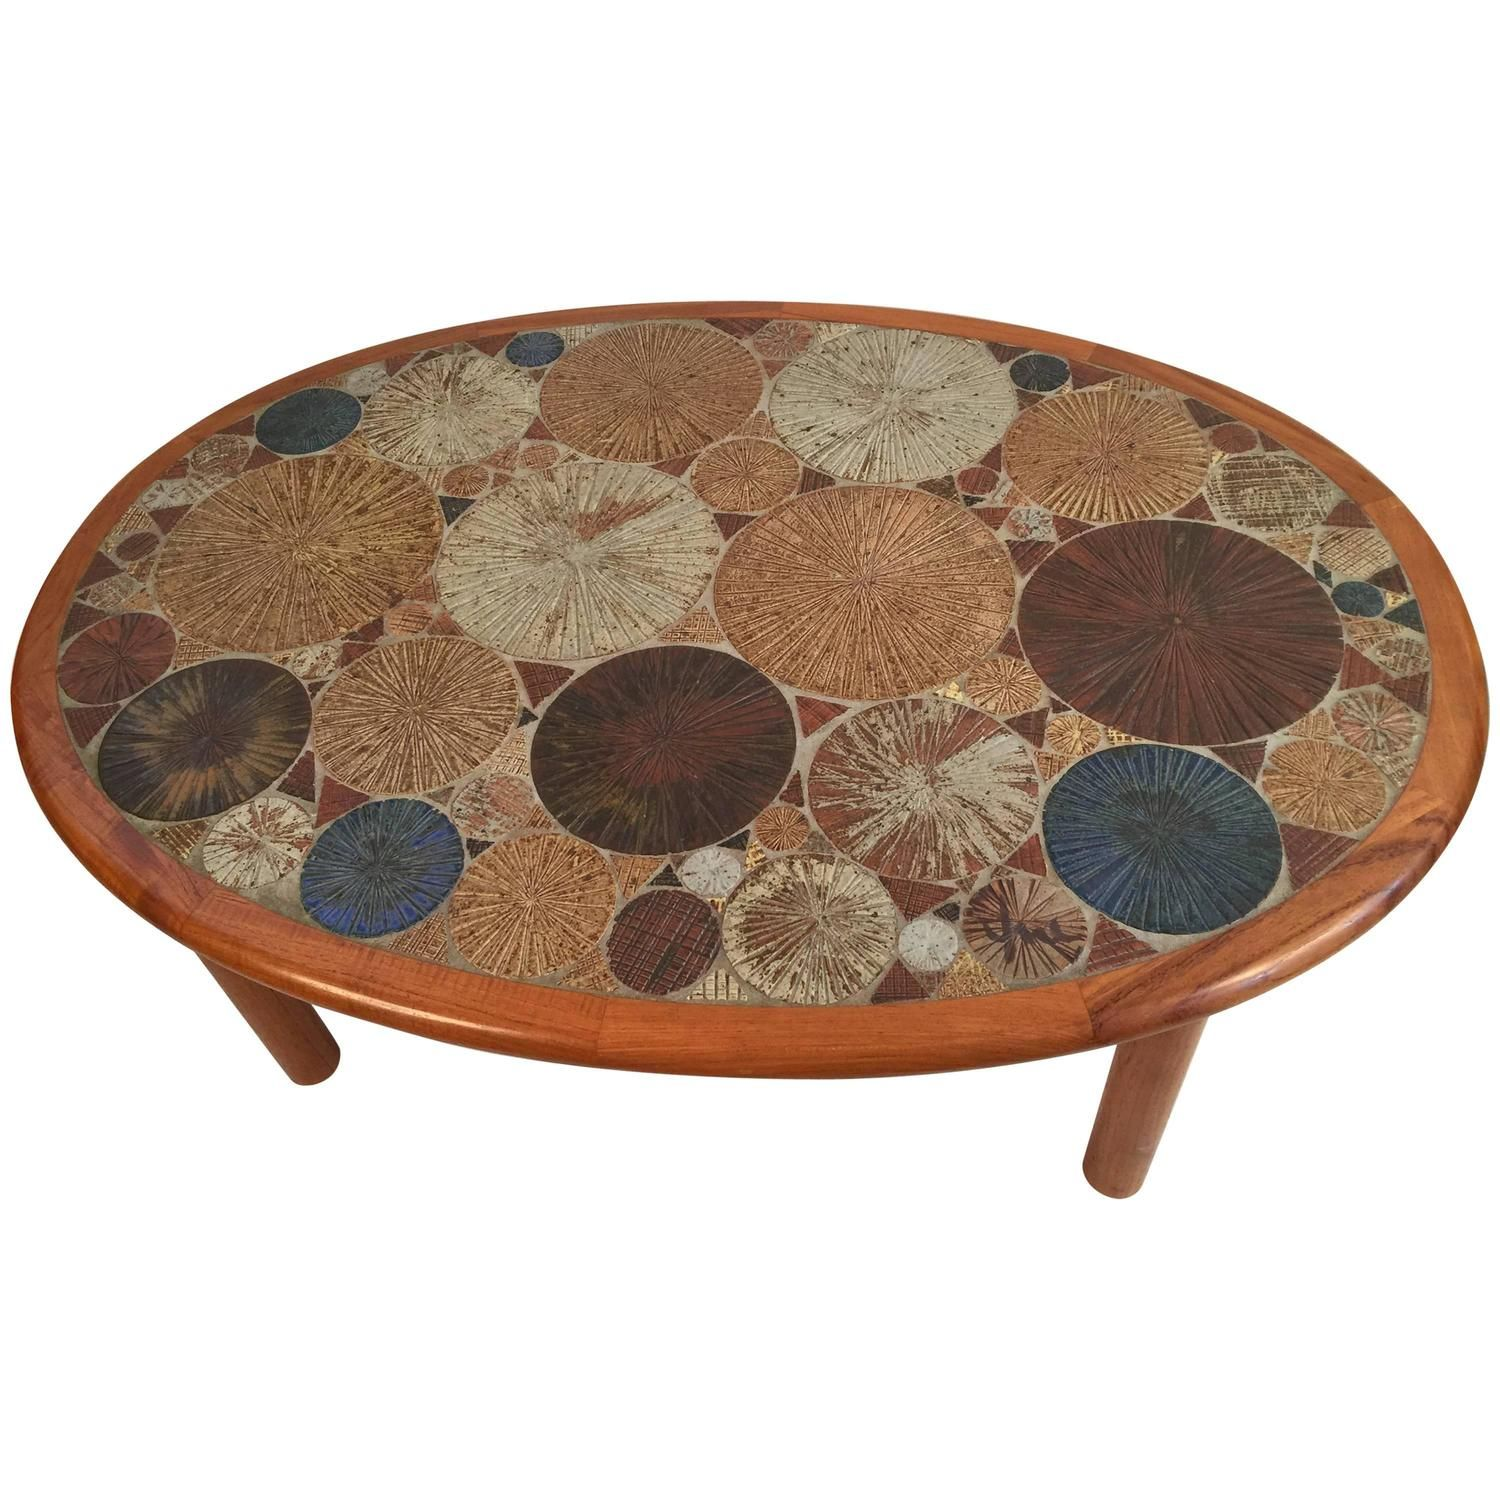 Tue Poulsen For Haslev Oval Coffee Table With Art Tile Inlay Coffee Table Oval Coffee Tables Table [ 1500 x 1500 Pixel ]